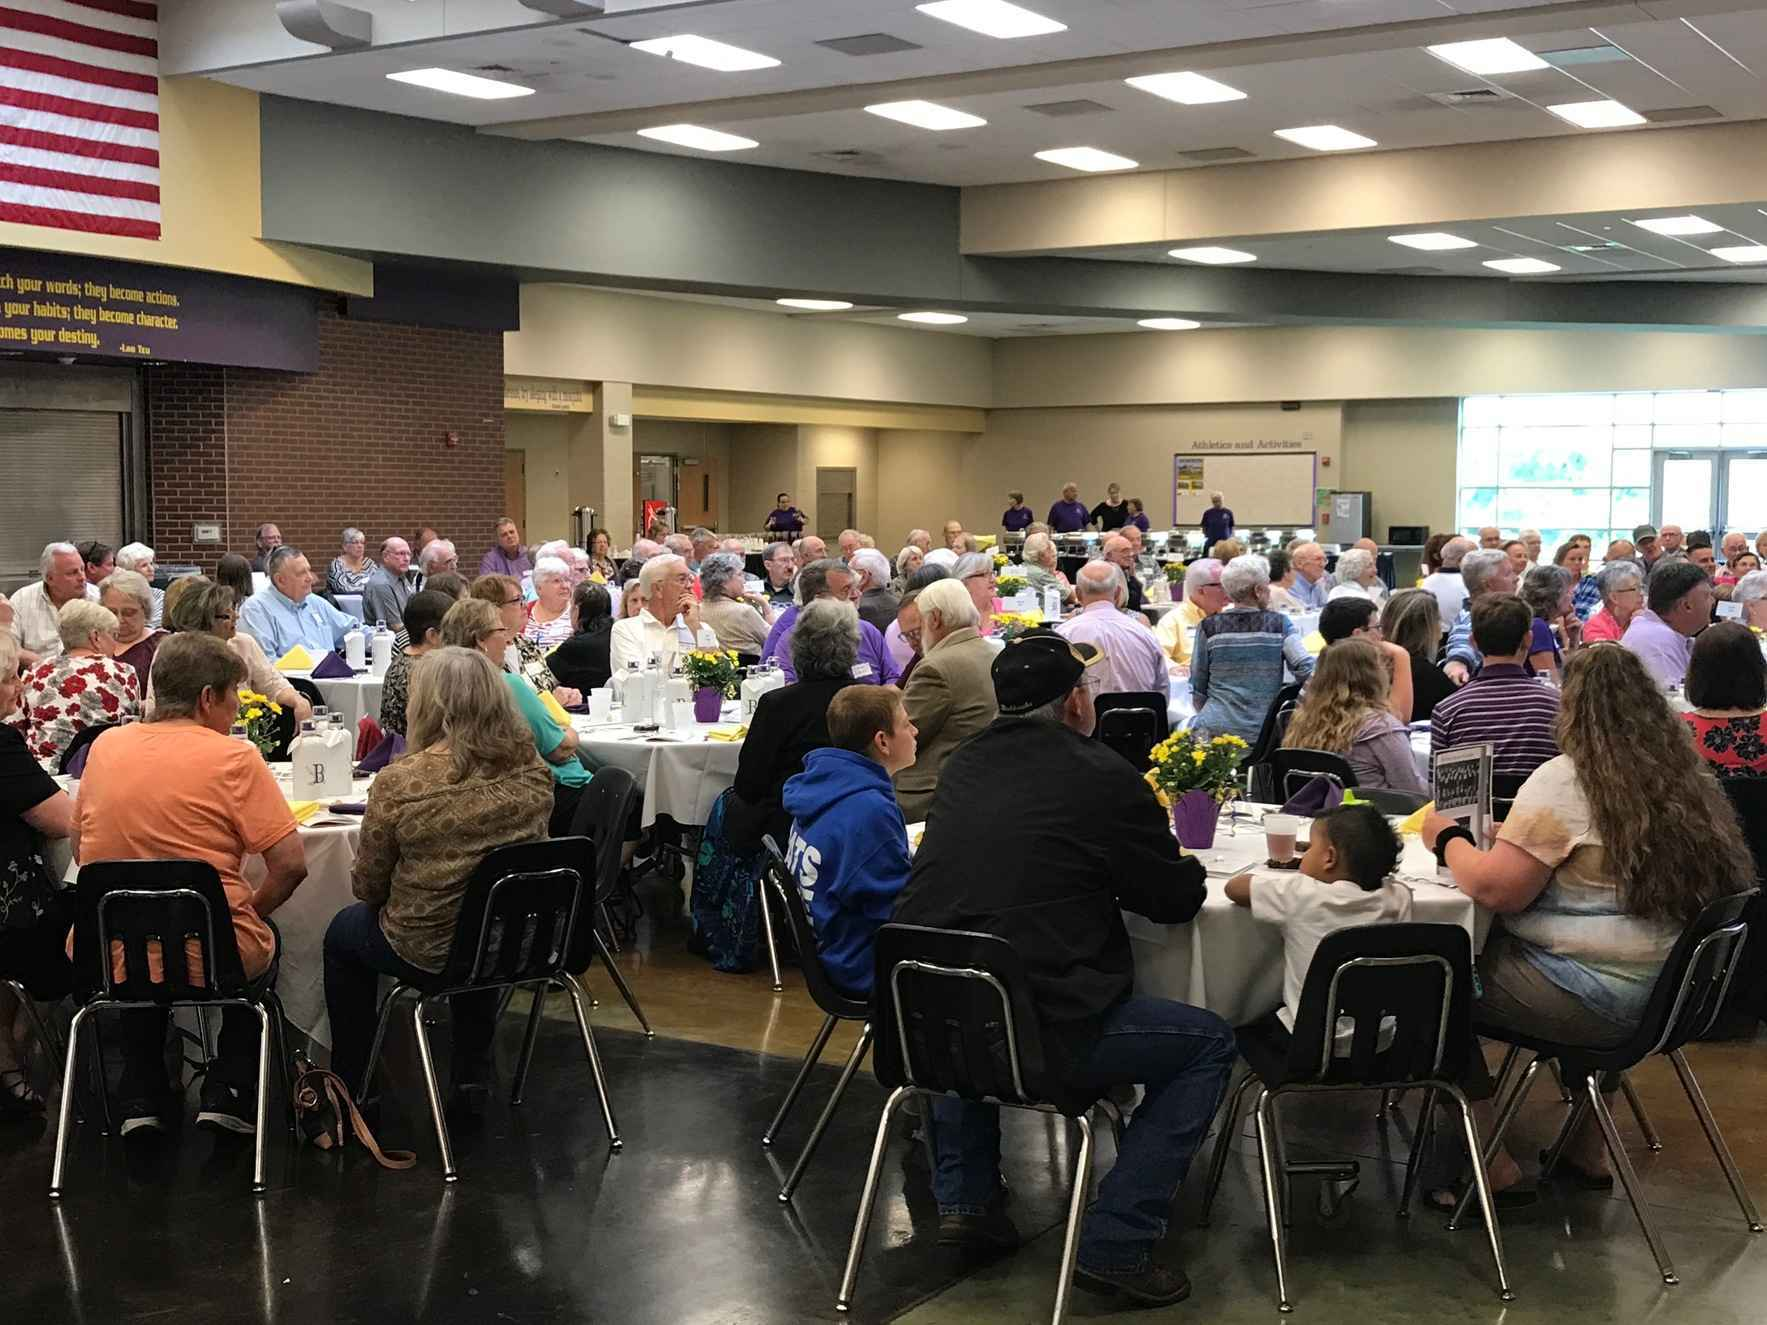 2018 Belton High School All Class Reunion & Hall of Fame Induction Ceremony image